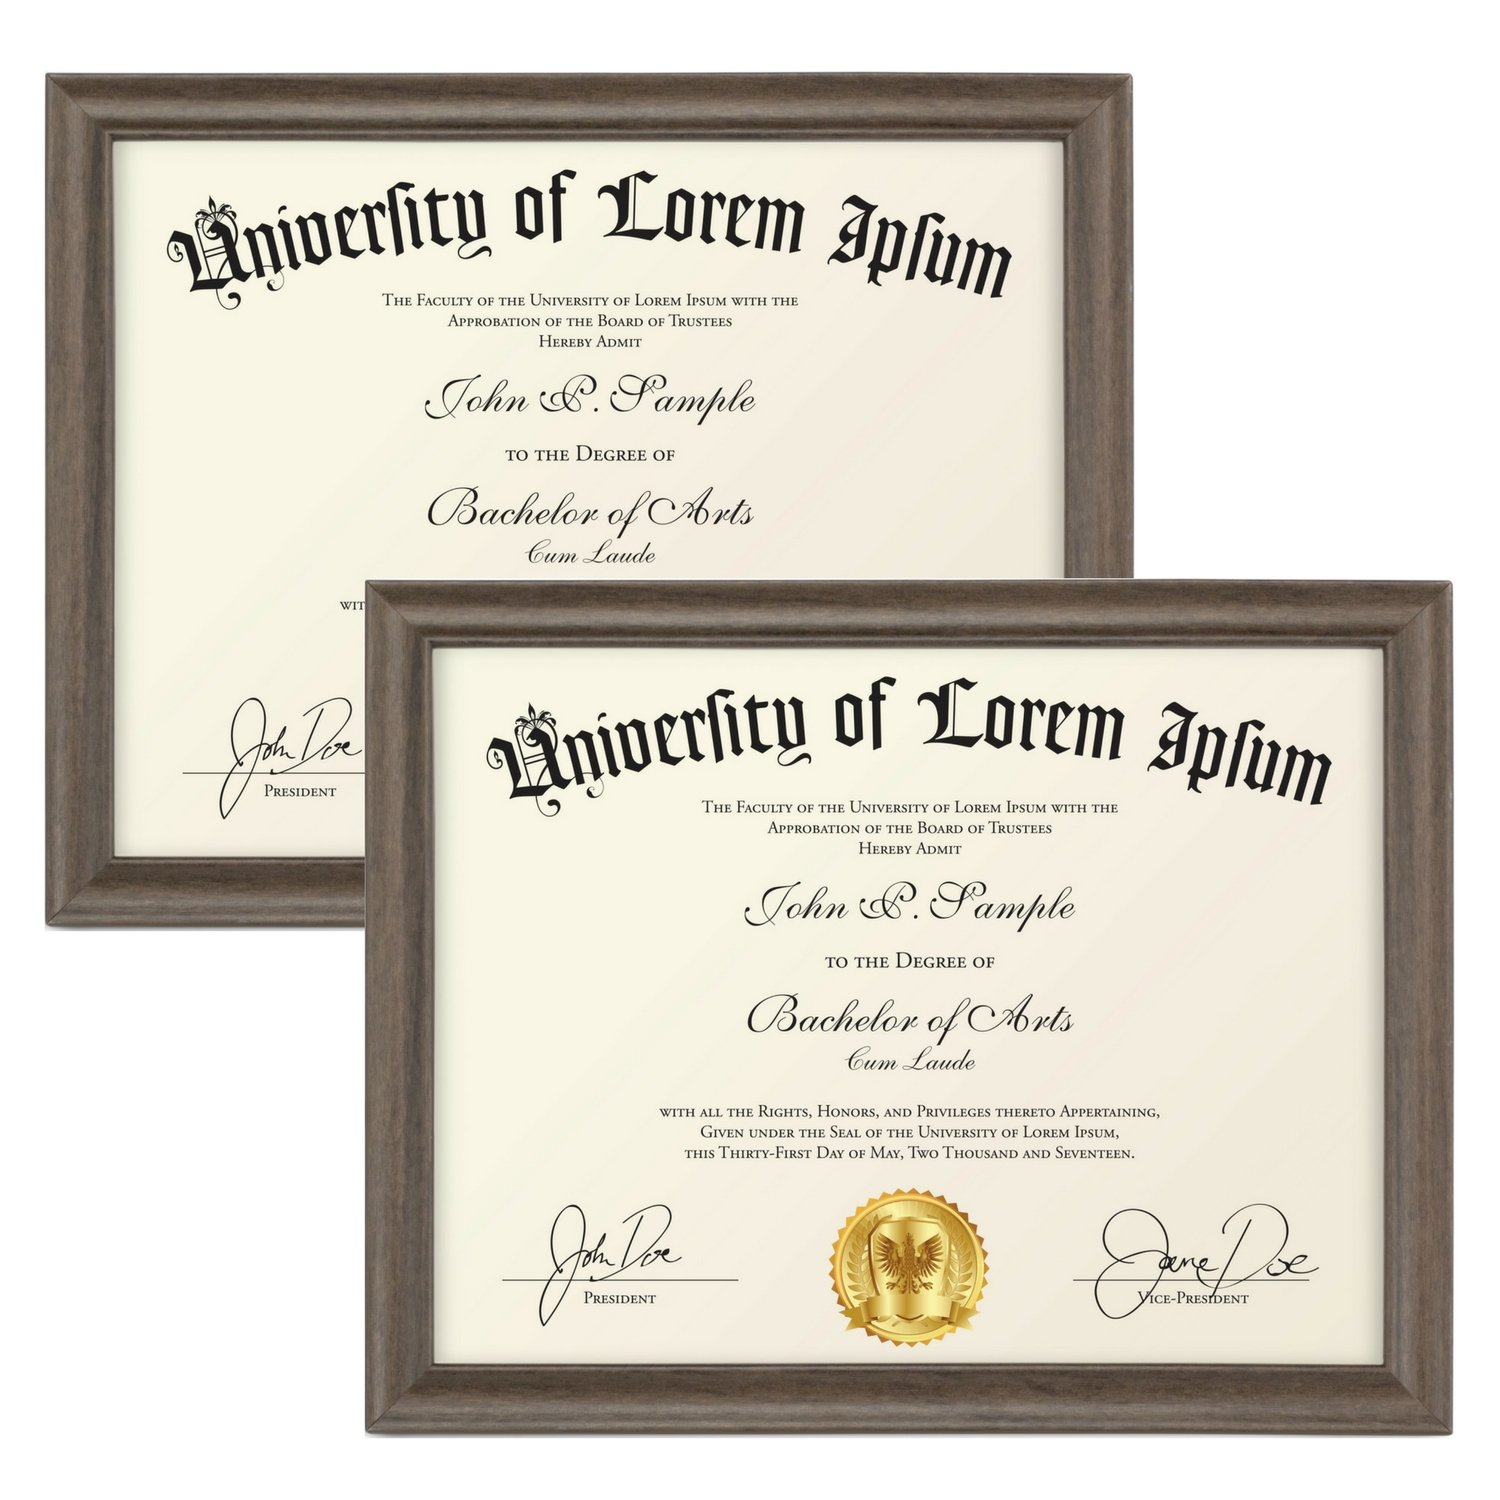 Icona Bay Certificate Holder Document Frames (Hickory Brown, 8.5 x 11 Inch, 2-Pack), Business License Permit, College Degree Diploma Frame for Standard Letter Size Paper, Wood Finish